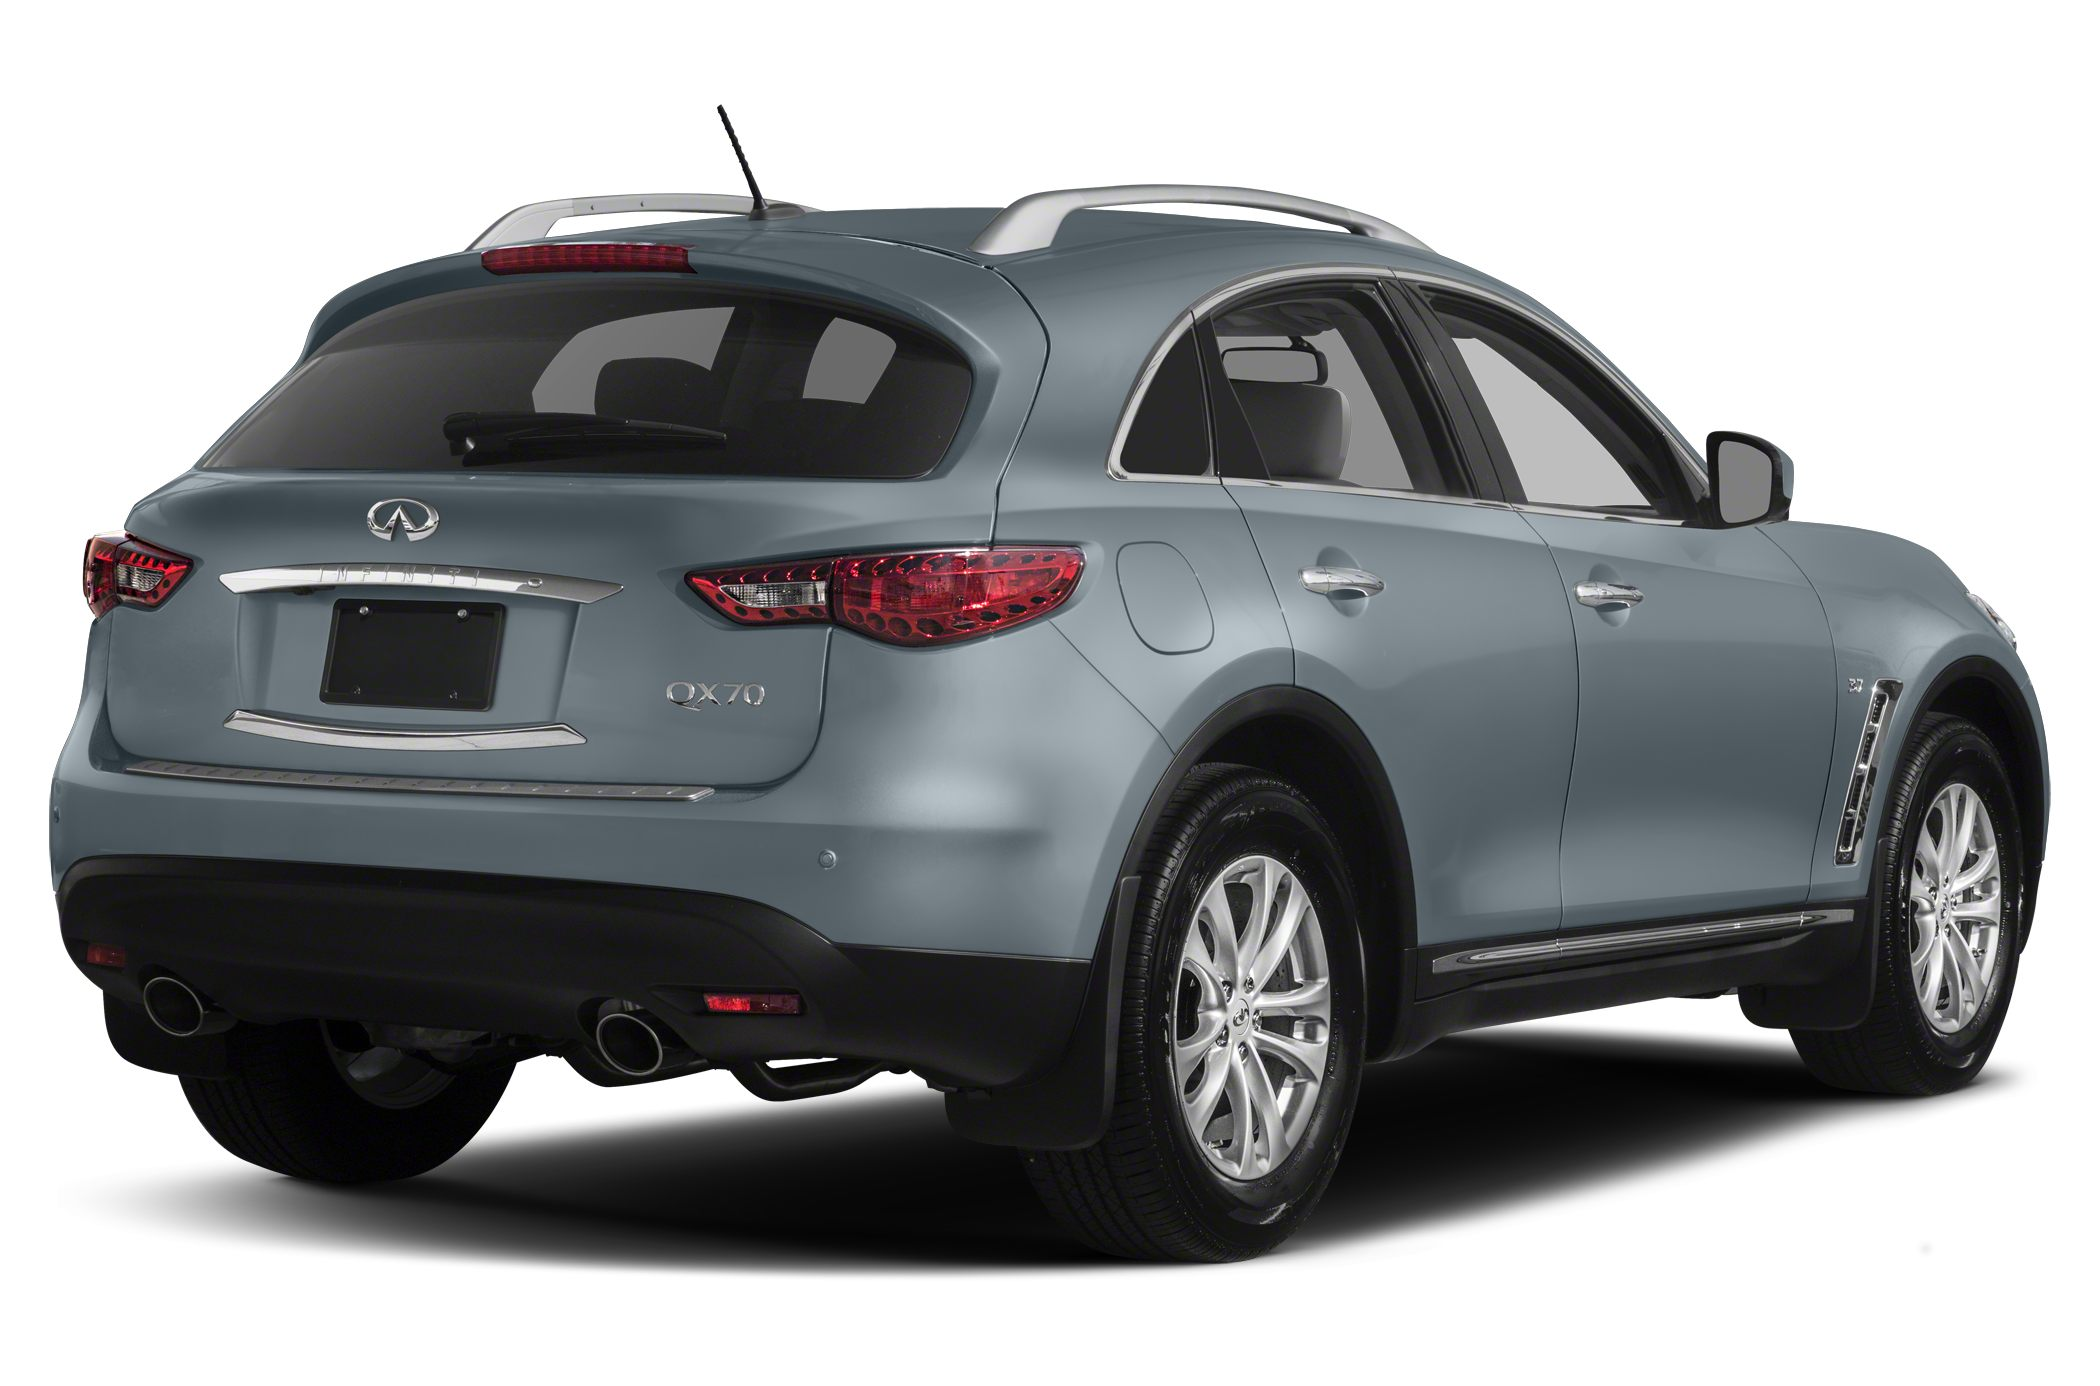 Infiniti Qx70 Sport Utility Models Price Specs Reviews